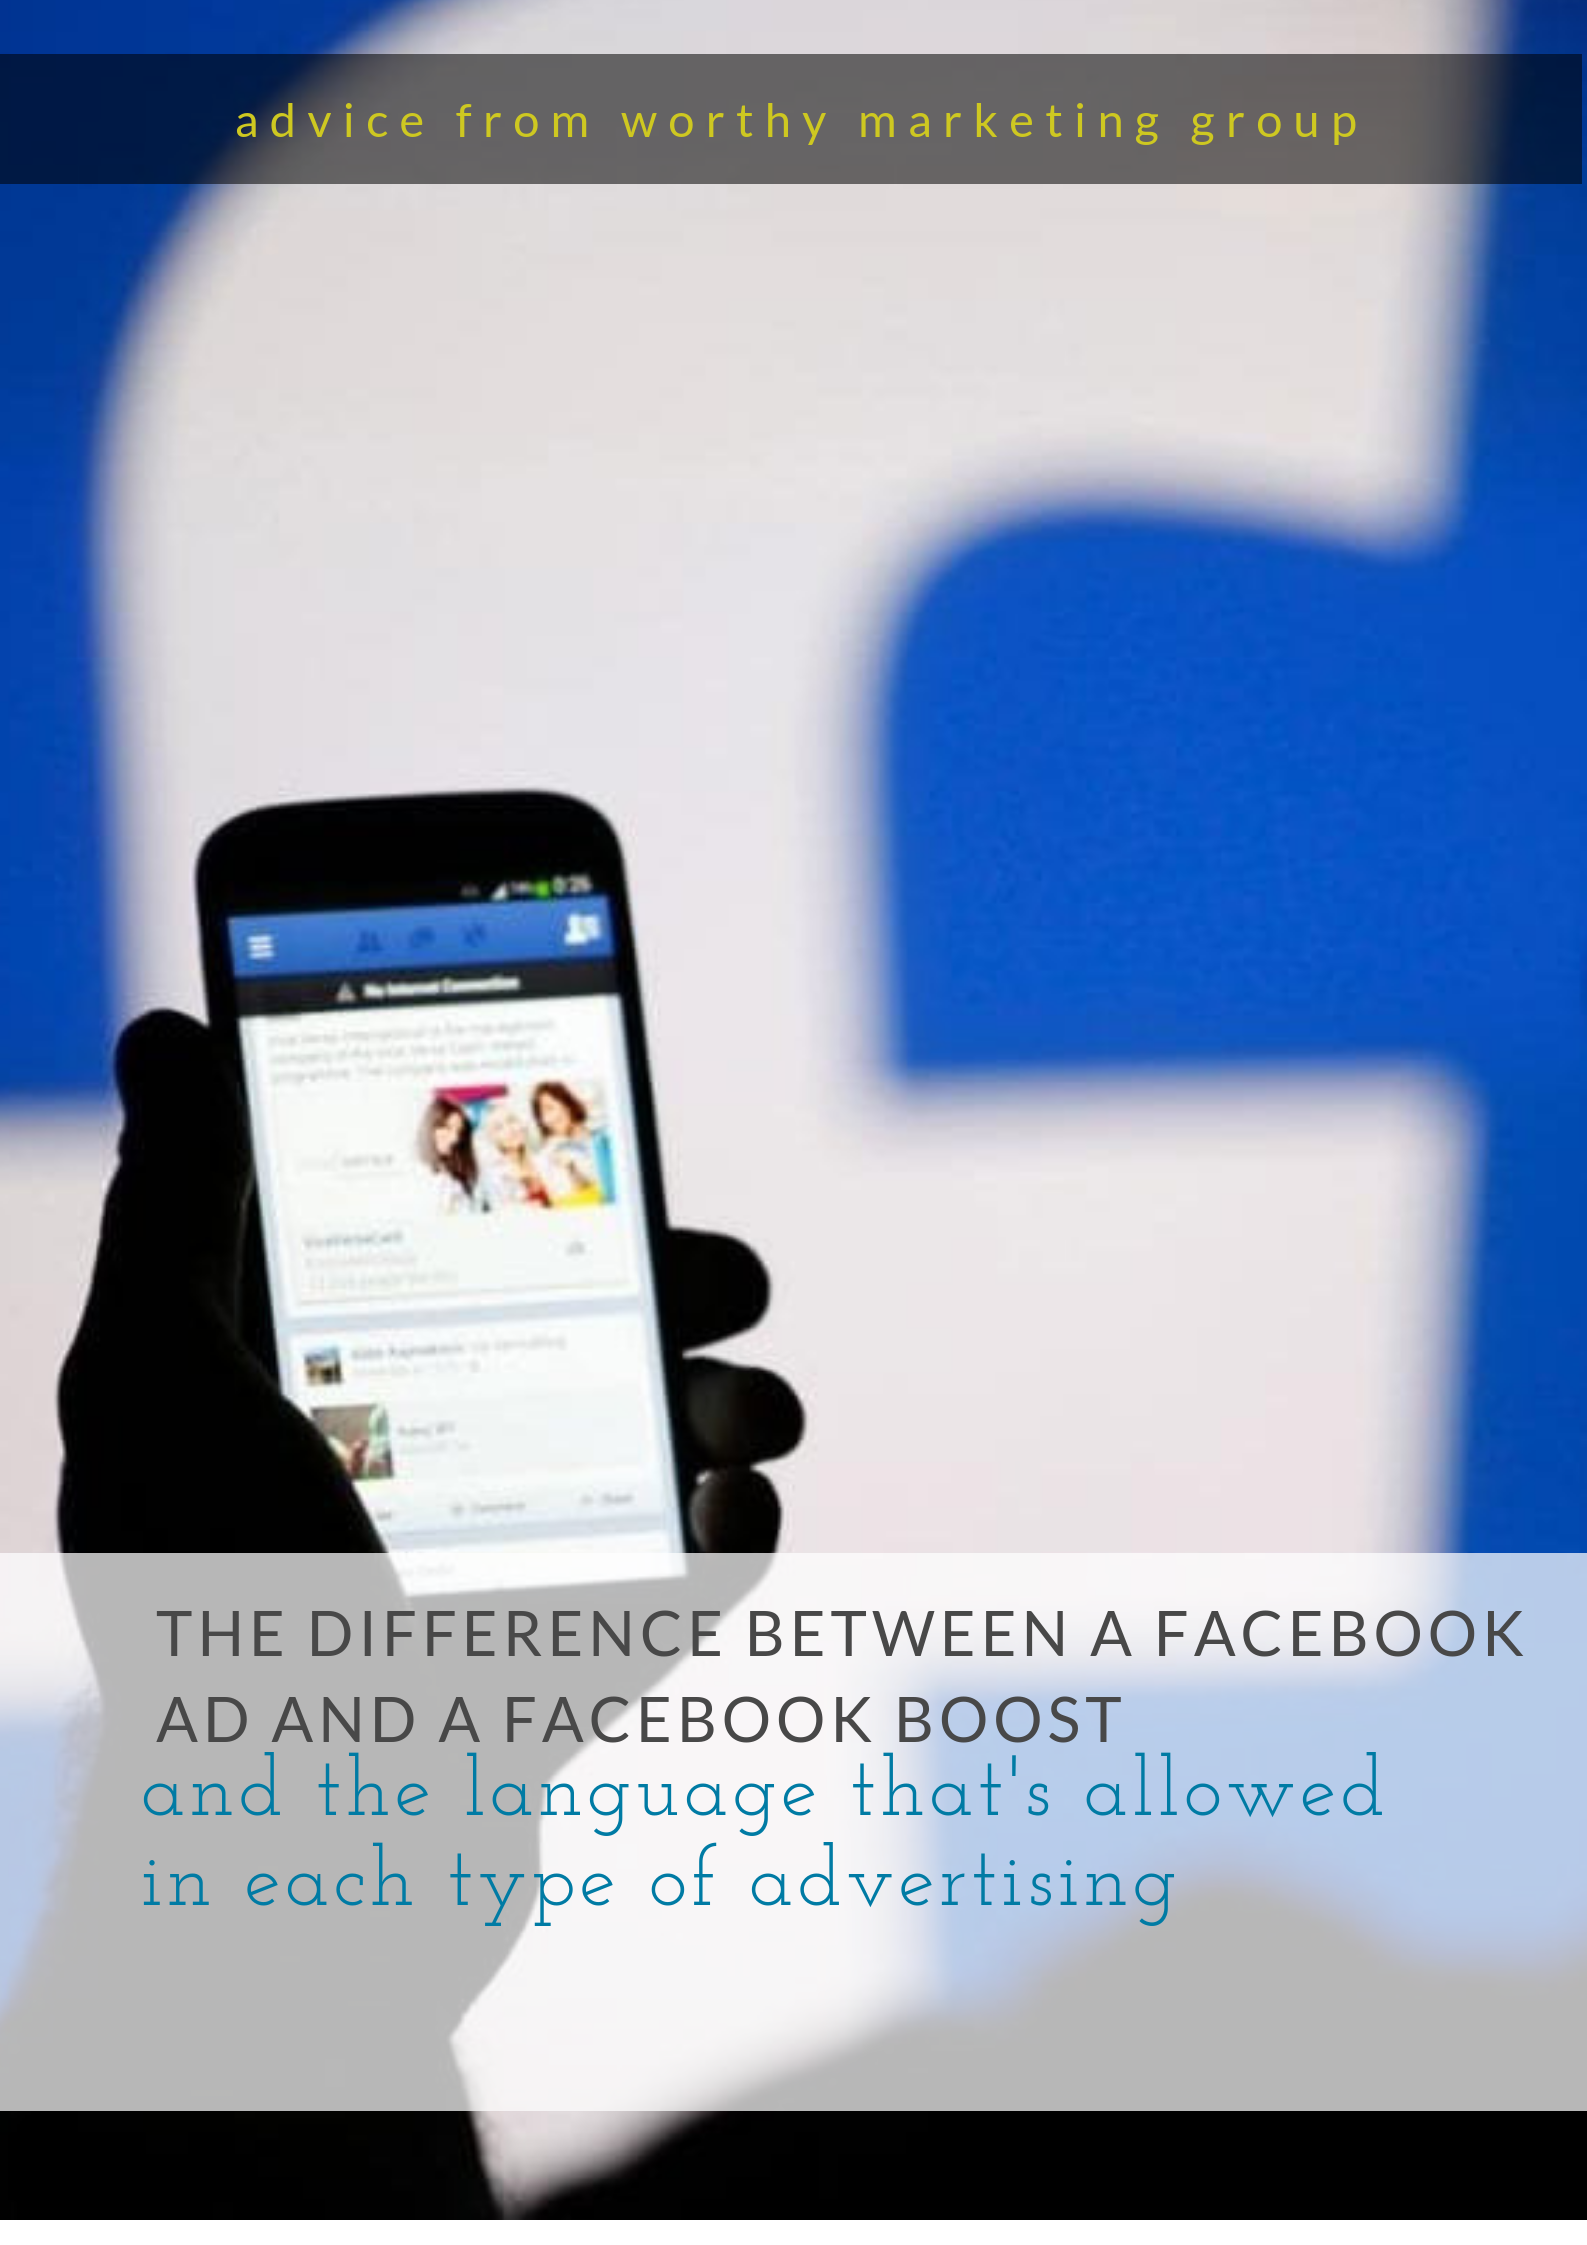 the difference between a Facebook boost and ad campaign and what language is allowed in each type of campaign | The Worthy Marketing Group Blog